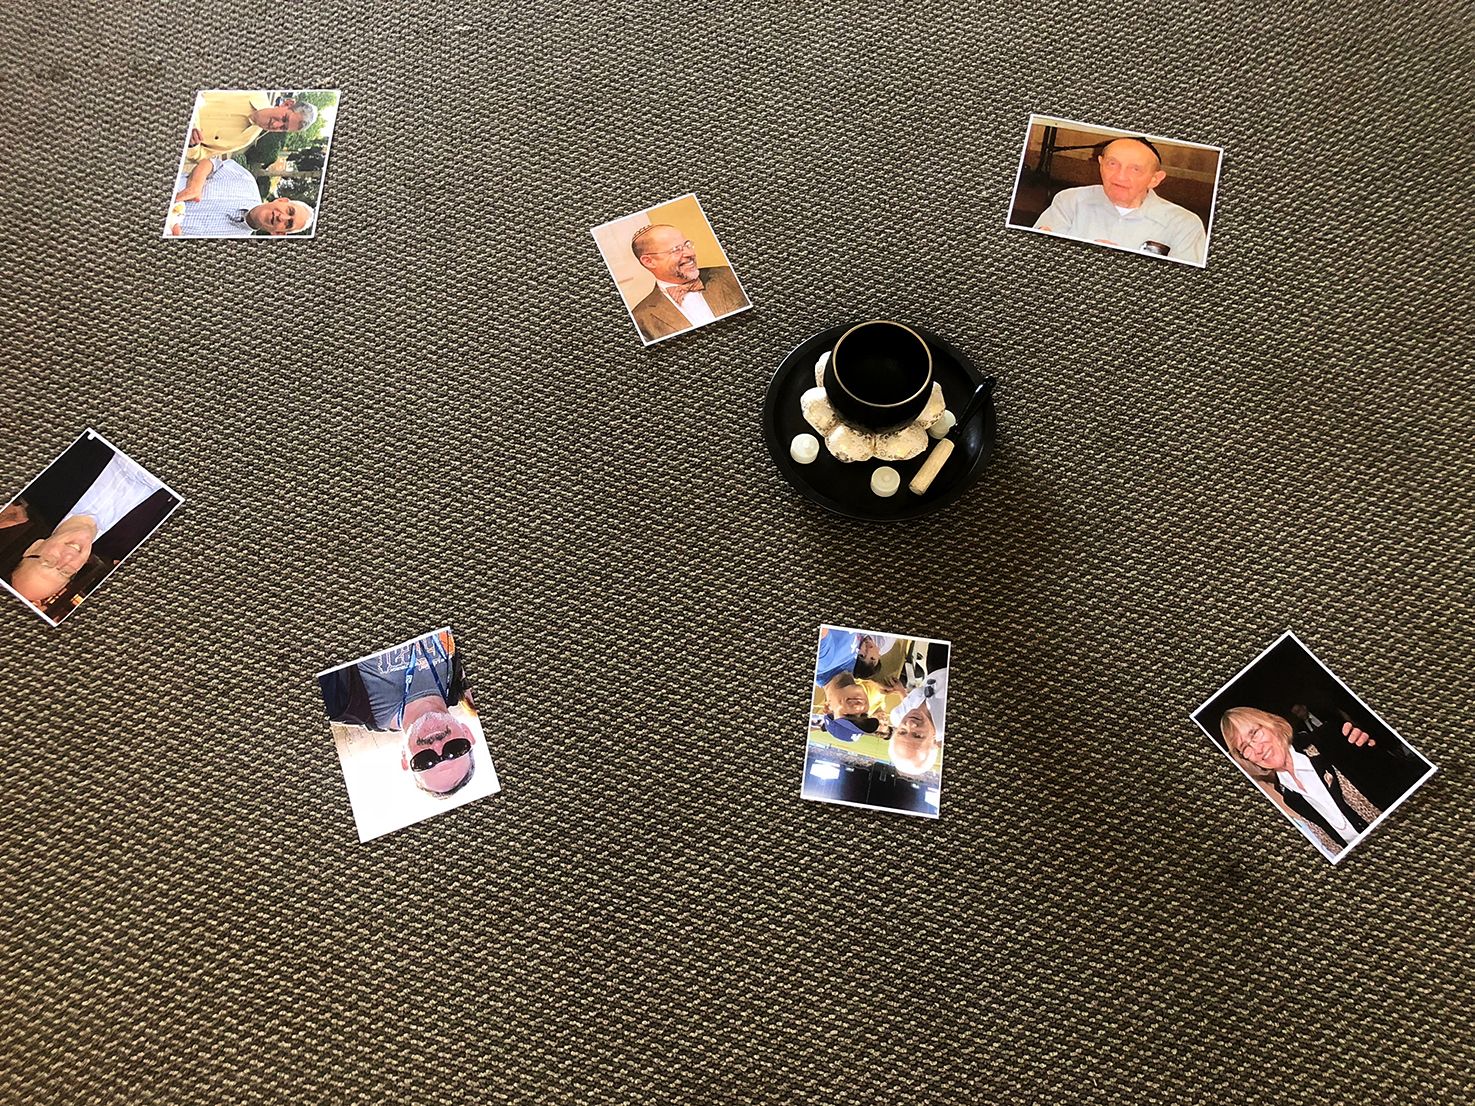 Pictures lie on the ground of the HD room, featuring seven victims of the Tree of Life synagogue shooting in Pittsburgh. JSC placed the pictures around a bowl with candles to honor the victims' memories.